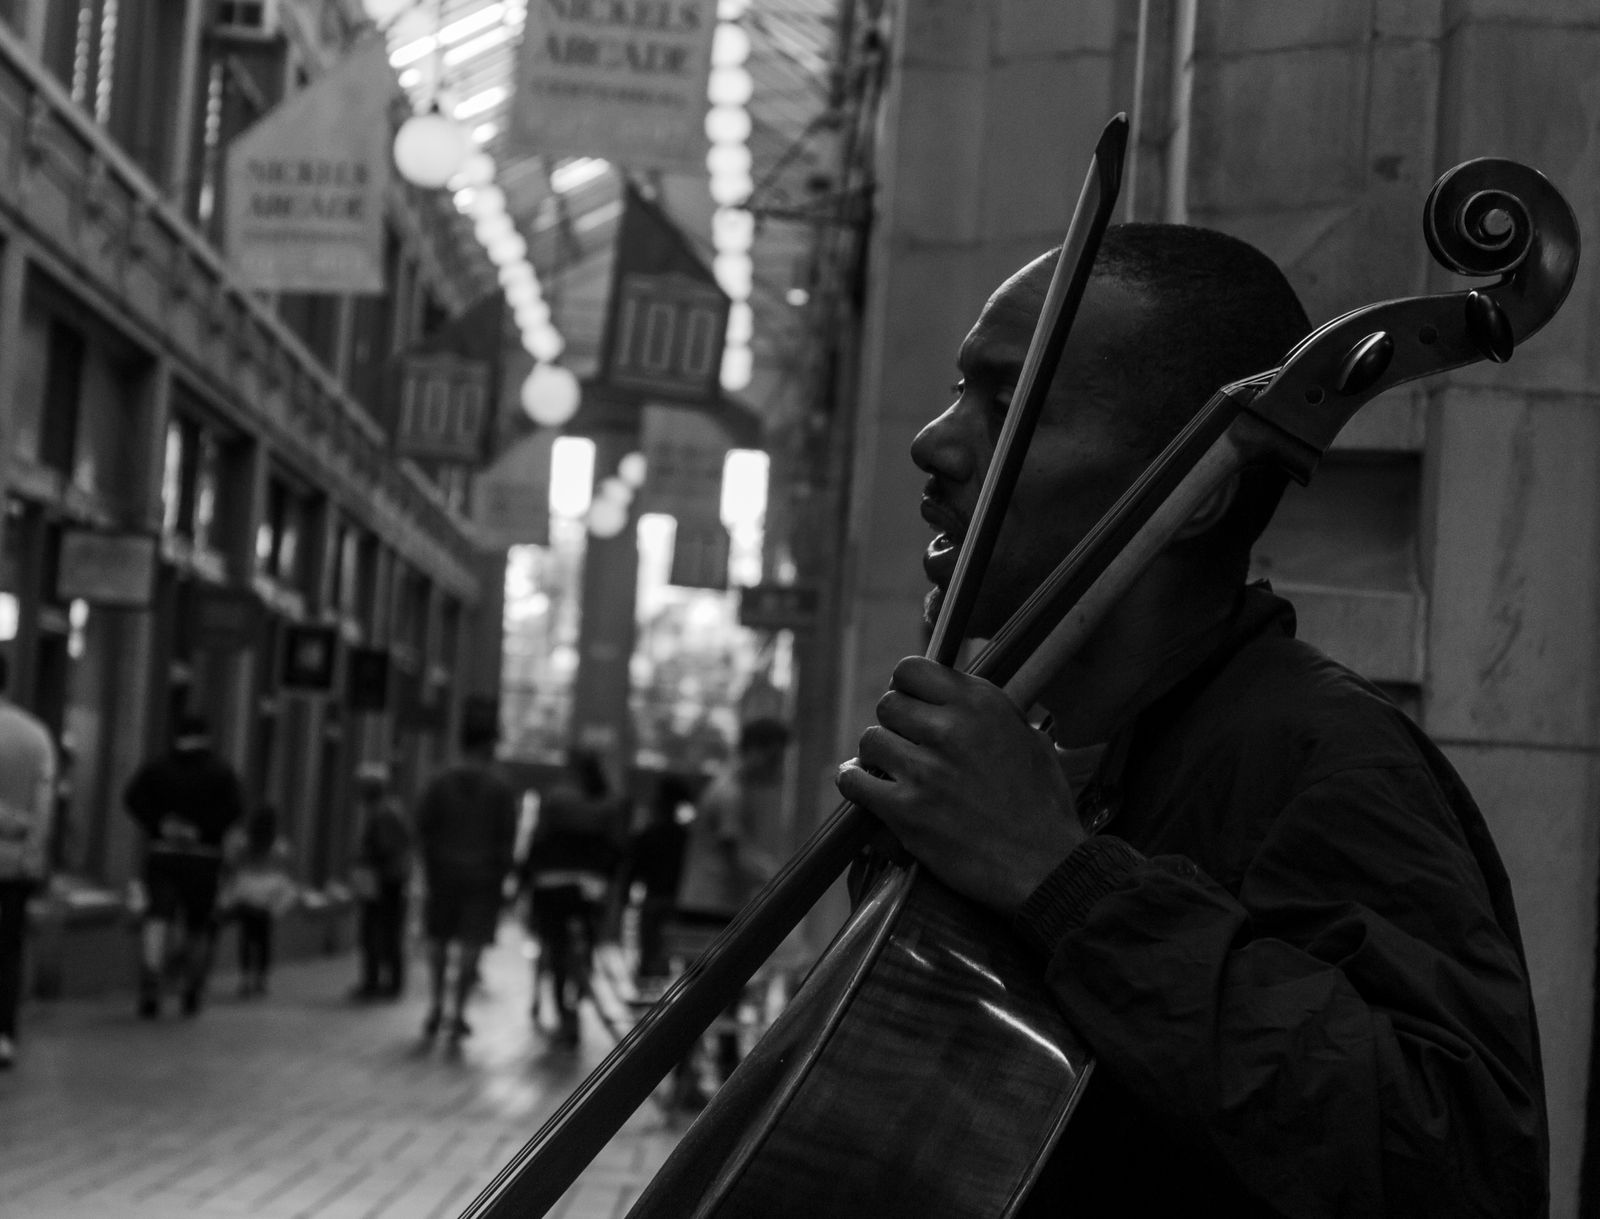 Cello Player by AaronMk